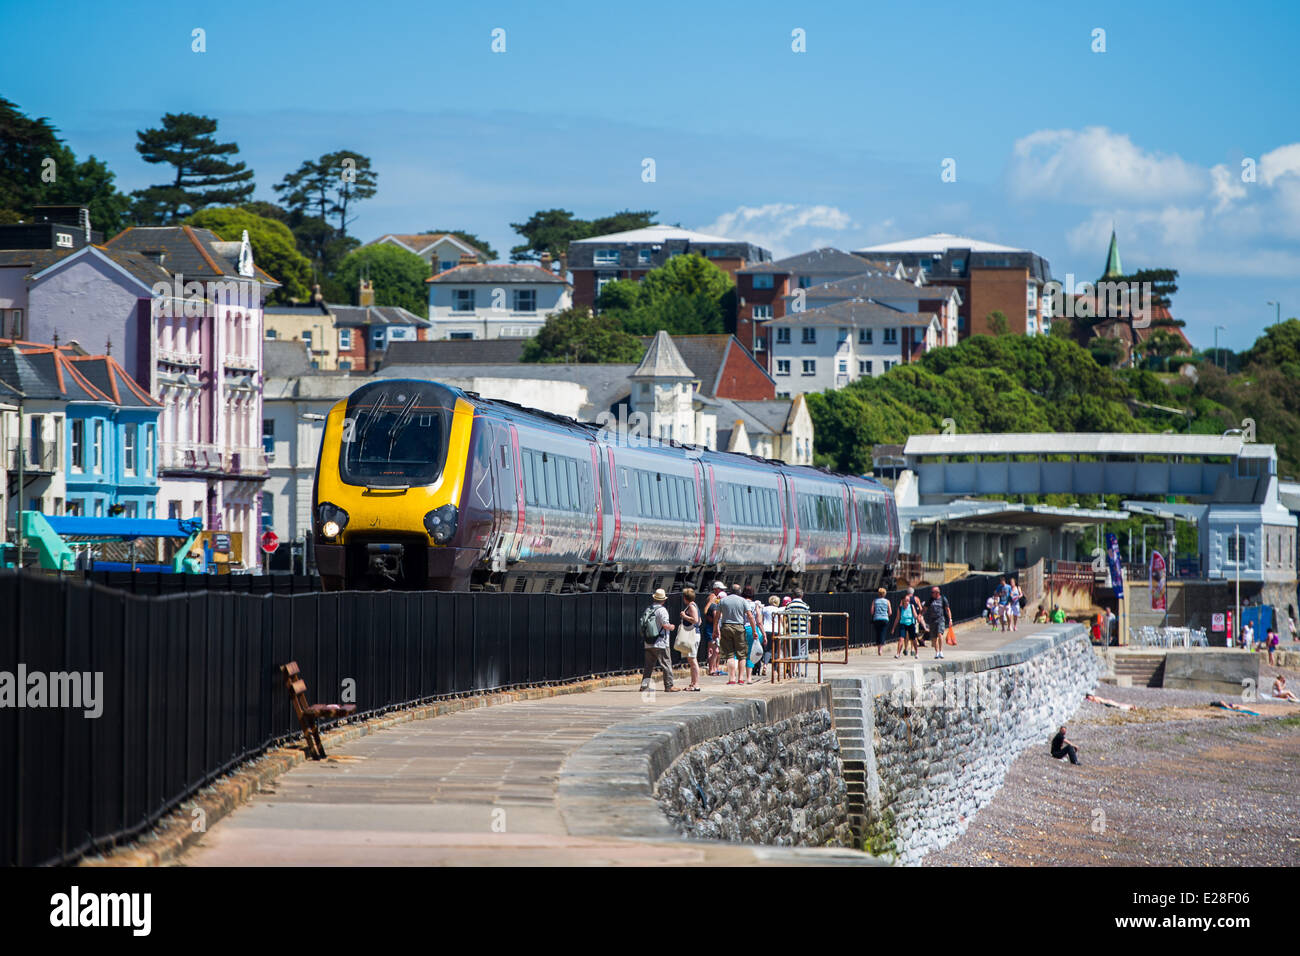 A Cross Country train at Dawlish station in England. - Stock Image